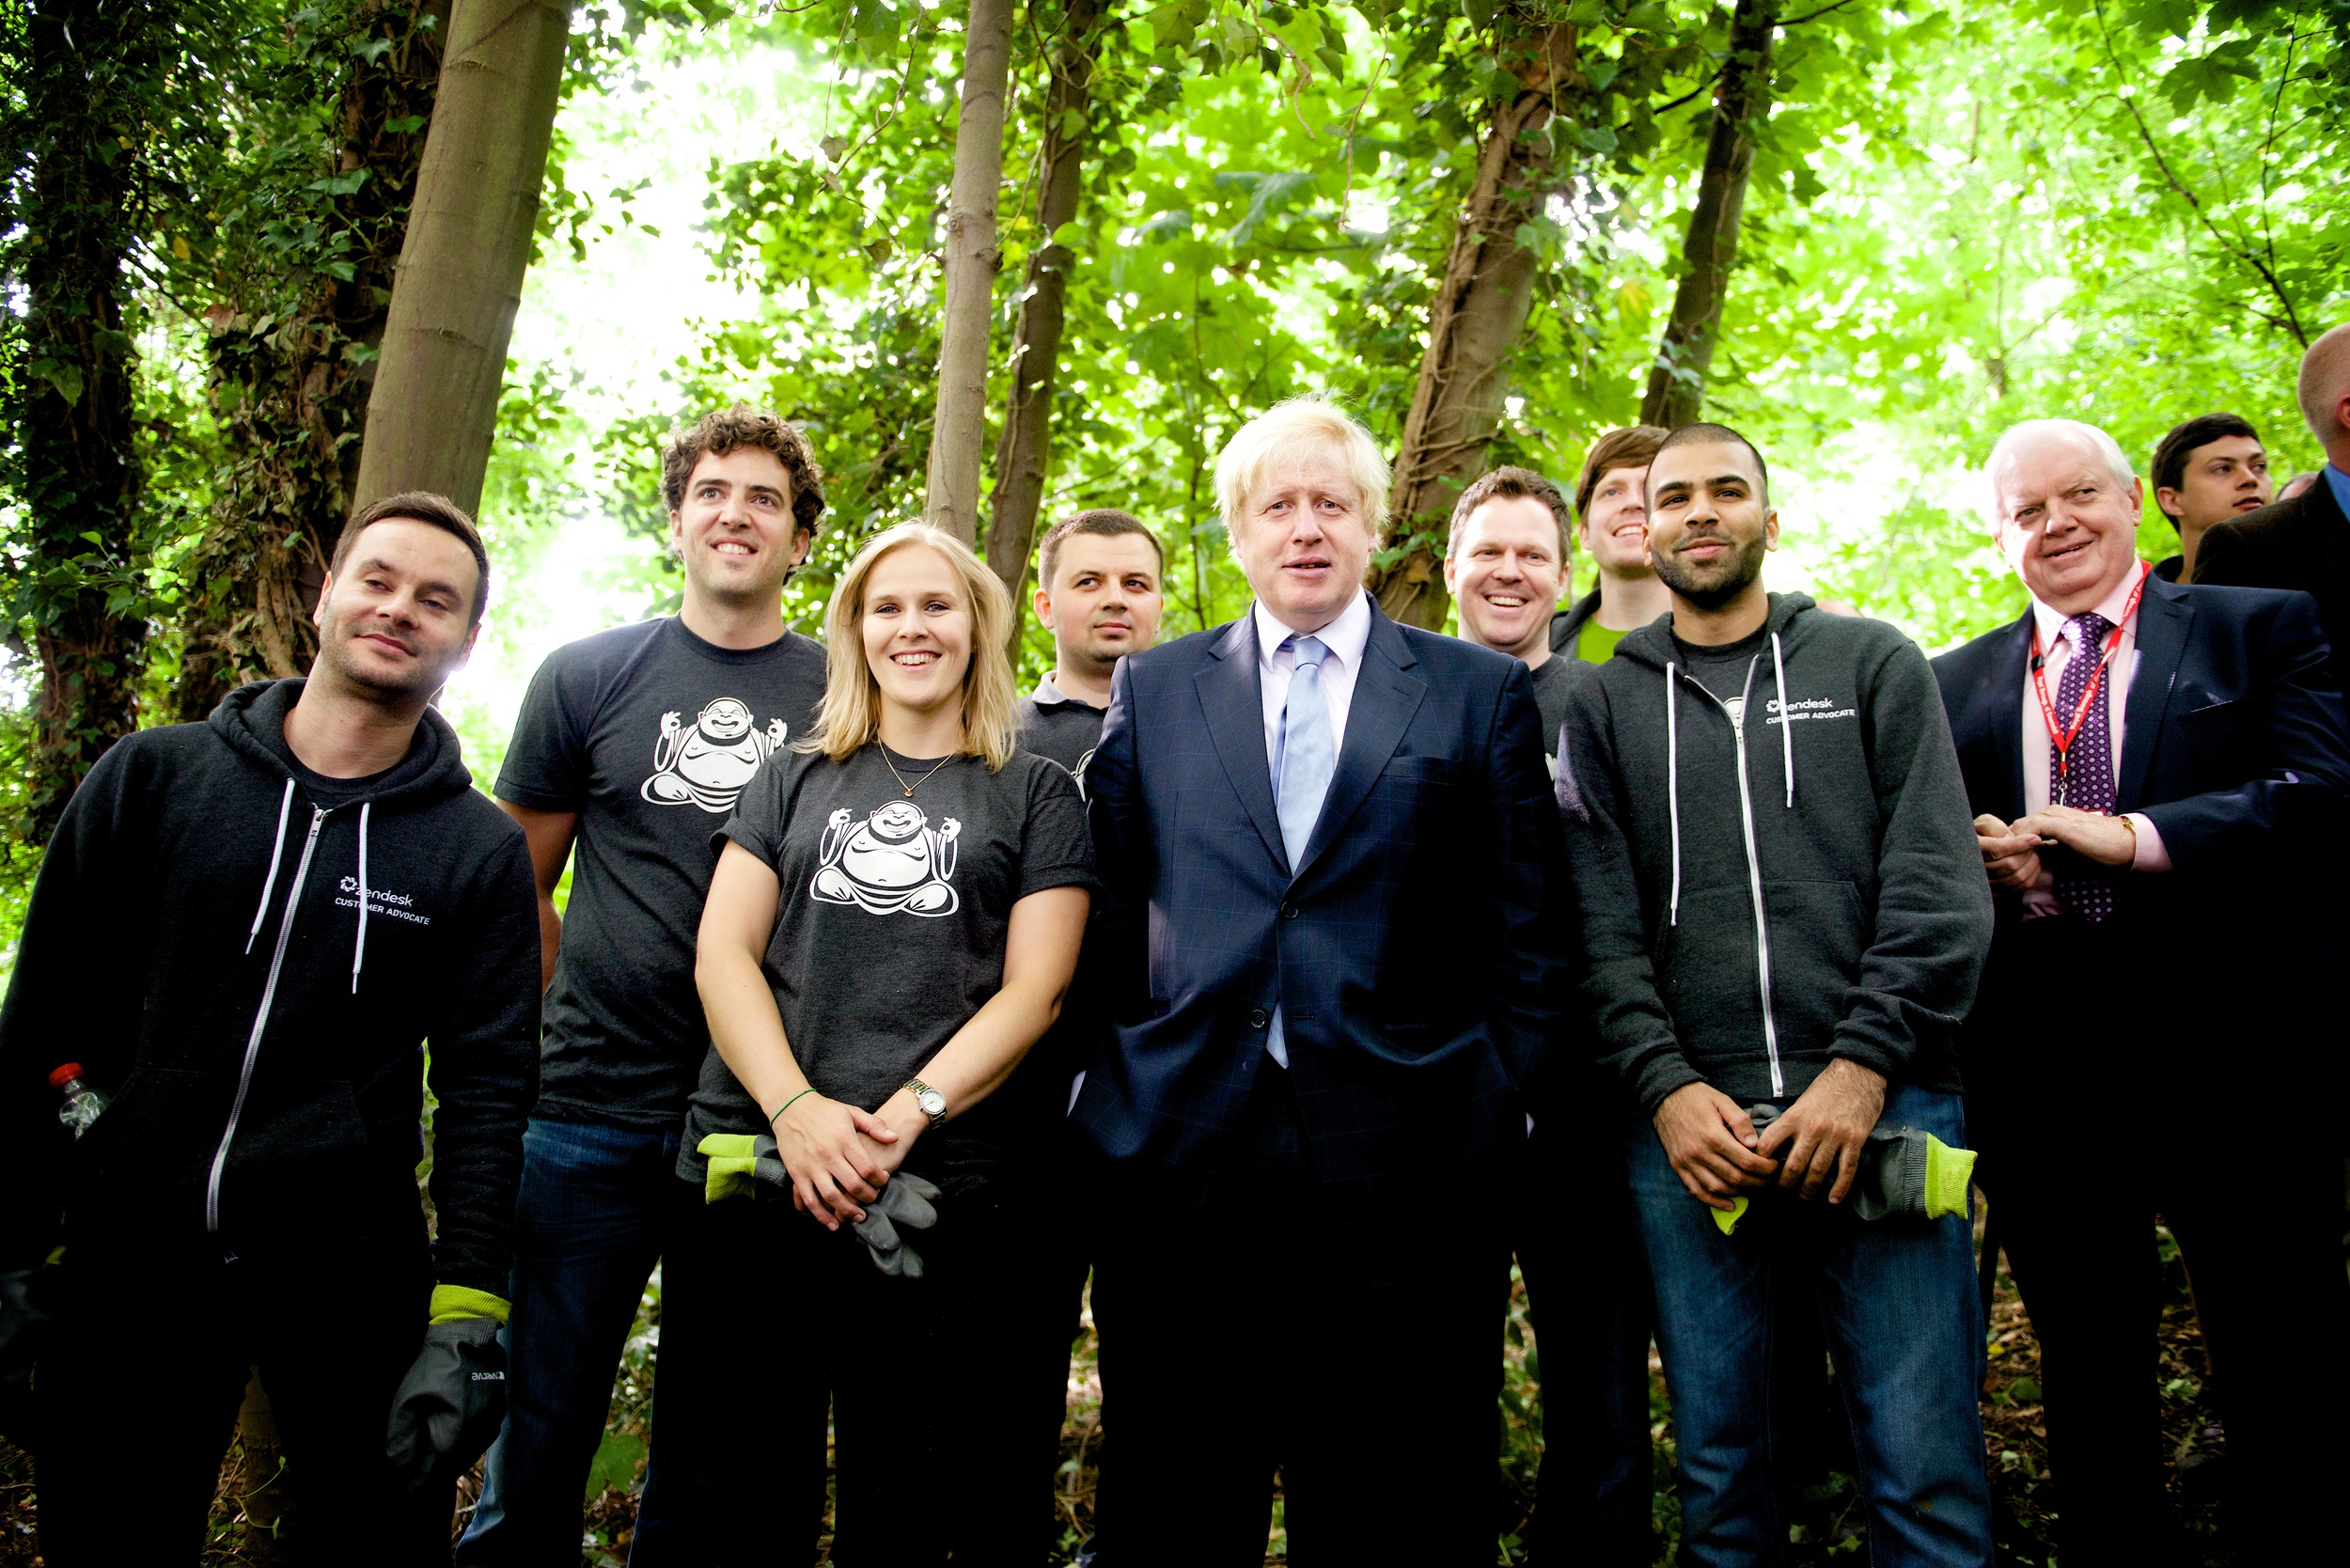 Zendesk employees in London had the opportunity to be a part of a big milestone for Team London  – 100,000 volunteers now volunteering in their local communities as part of Team London. Along with the Mayor of London, Boris Johnson,  they visited the Wide Horizons Centre to help rebuild a pond into an open green space.